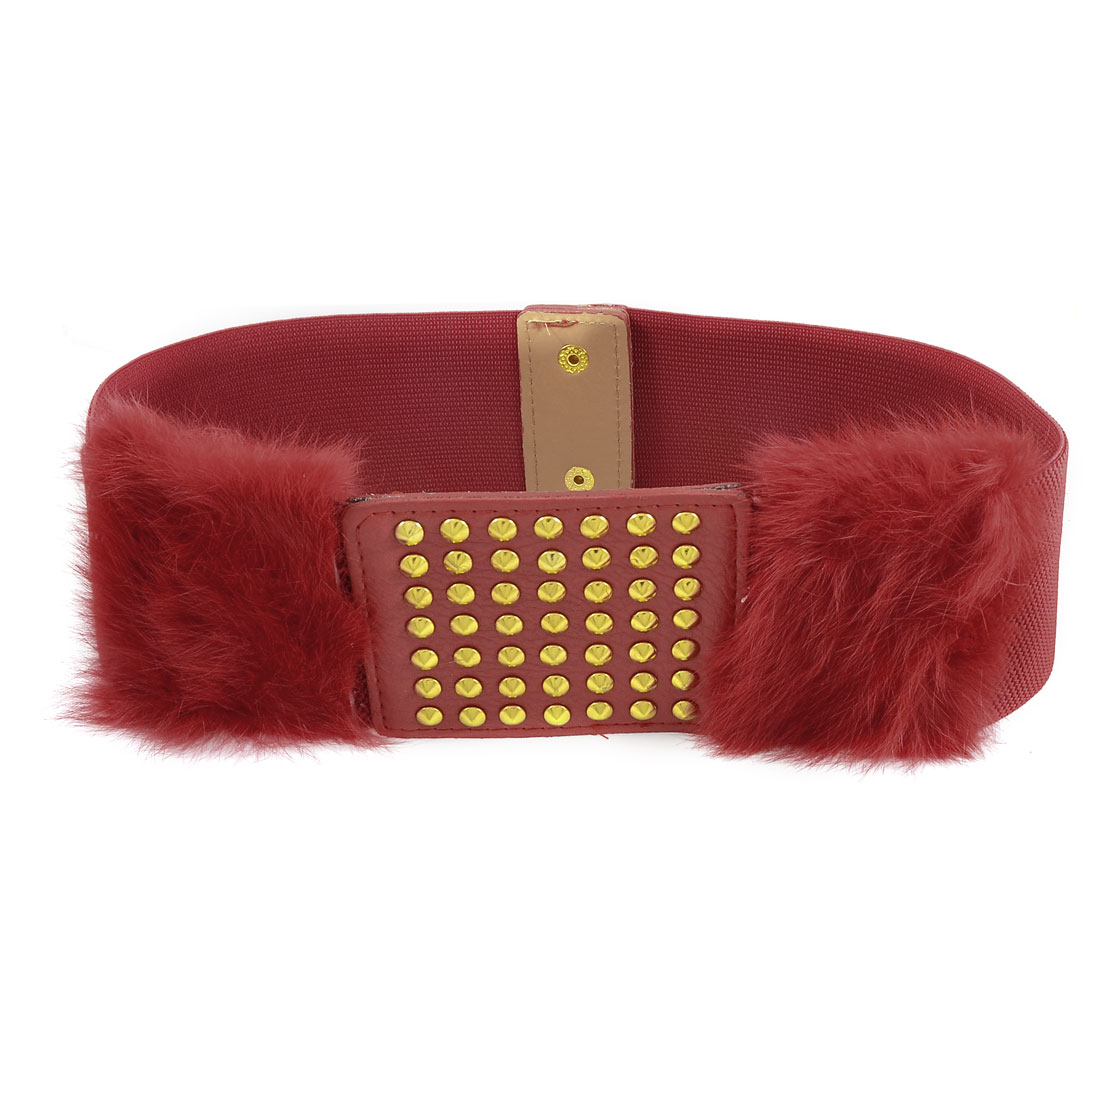 Gold Tone Studs Decor Faux Fur Red Stretchy Belt Waistband for Women